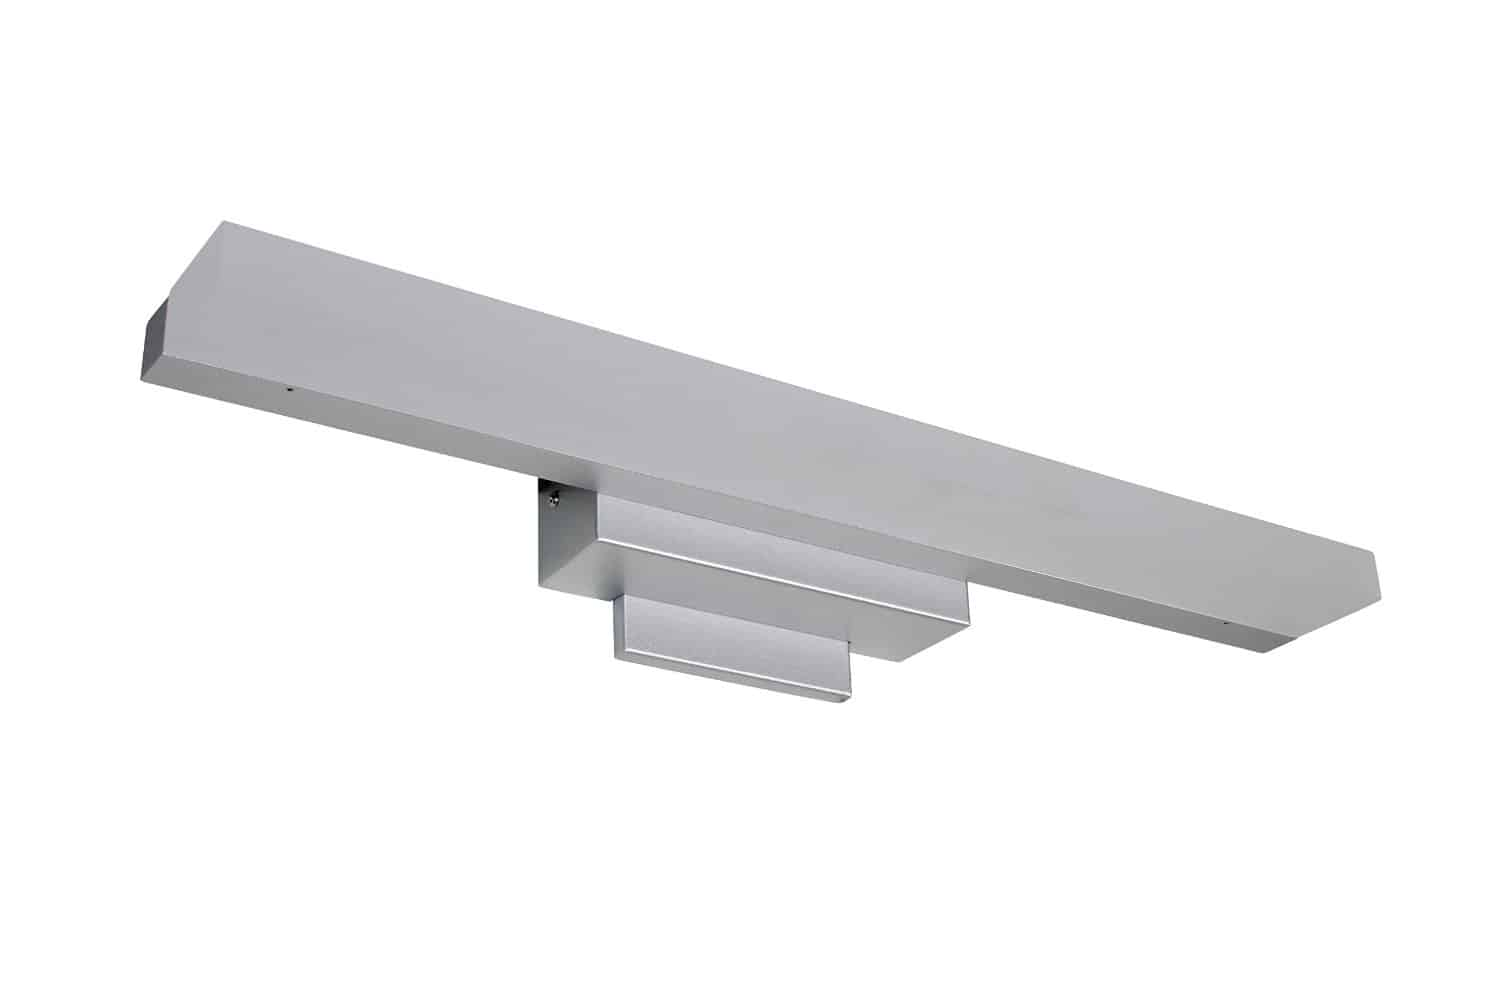 vonn-led-bathroom-bar-light